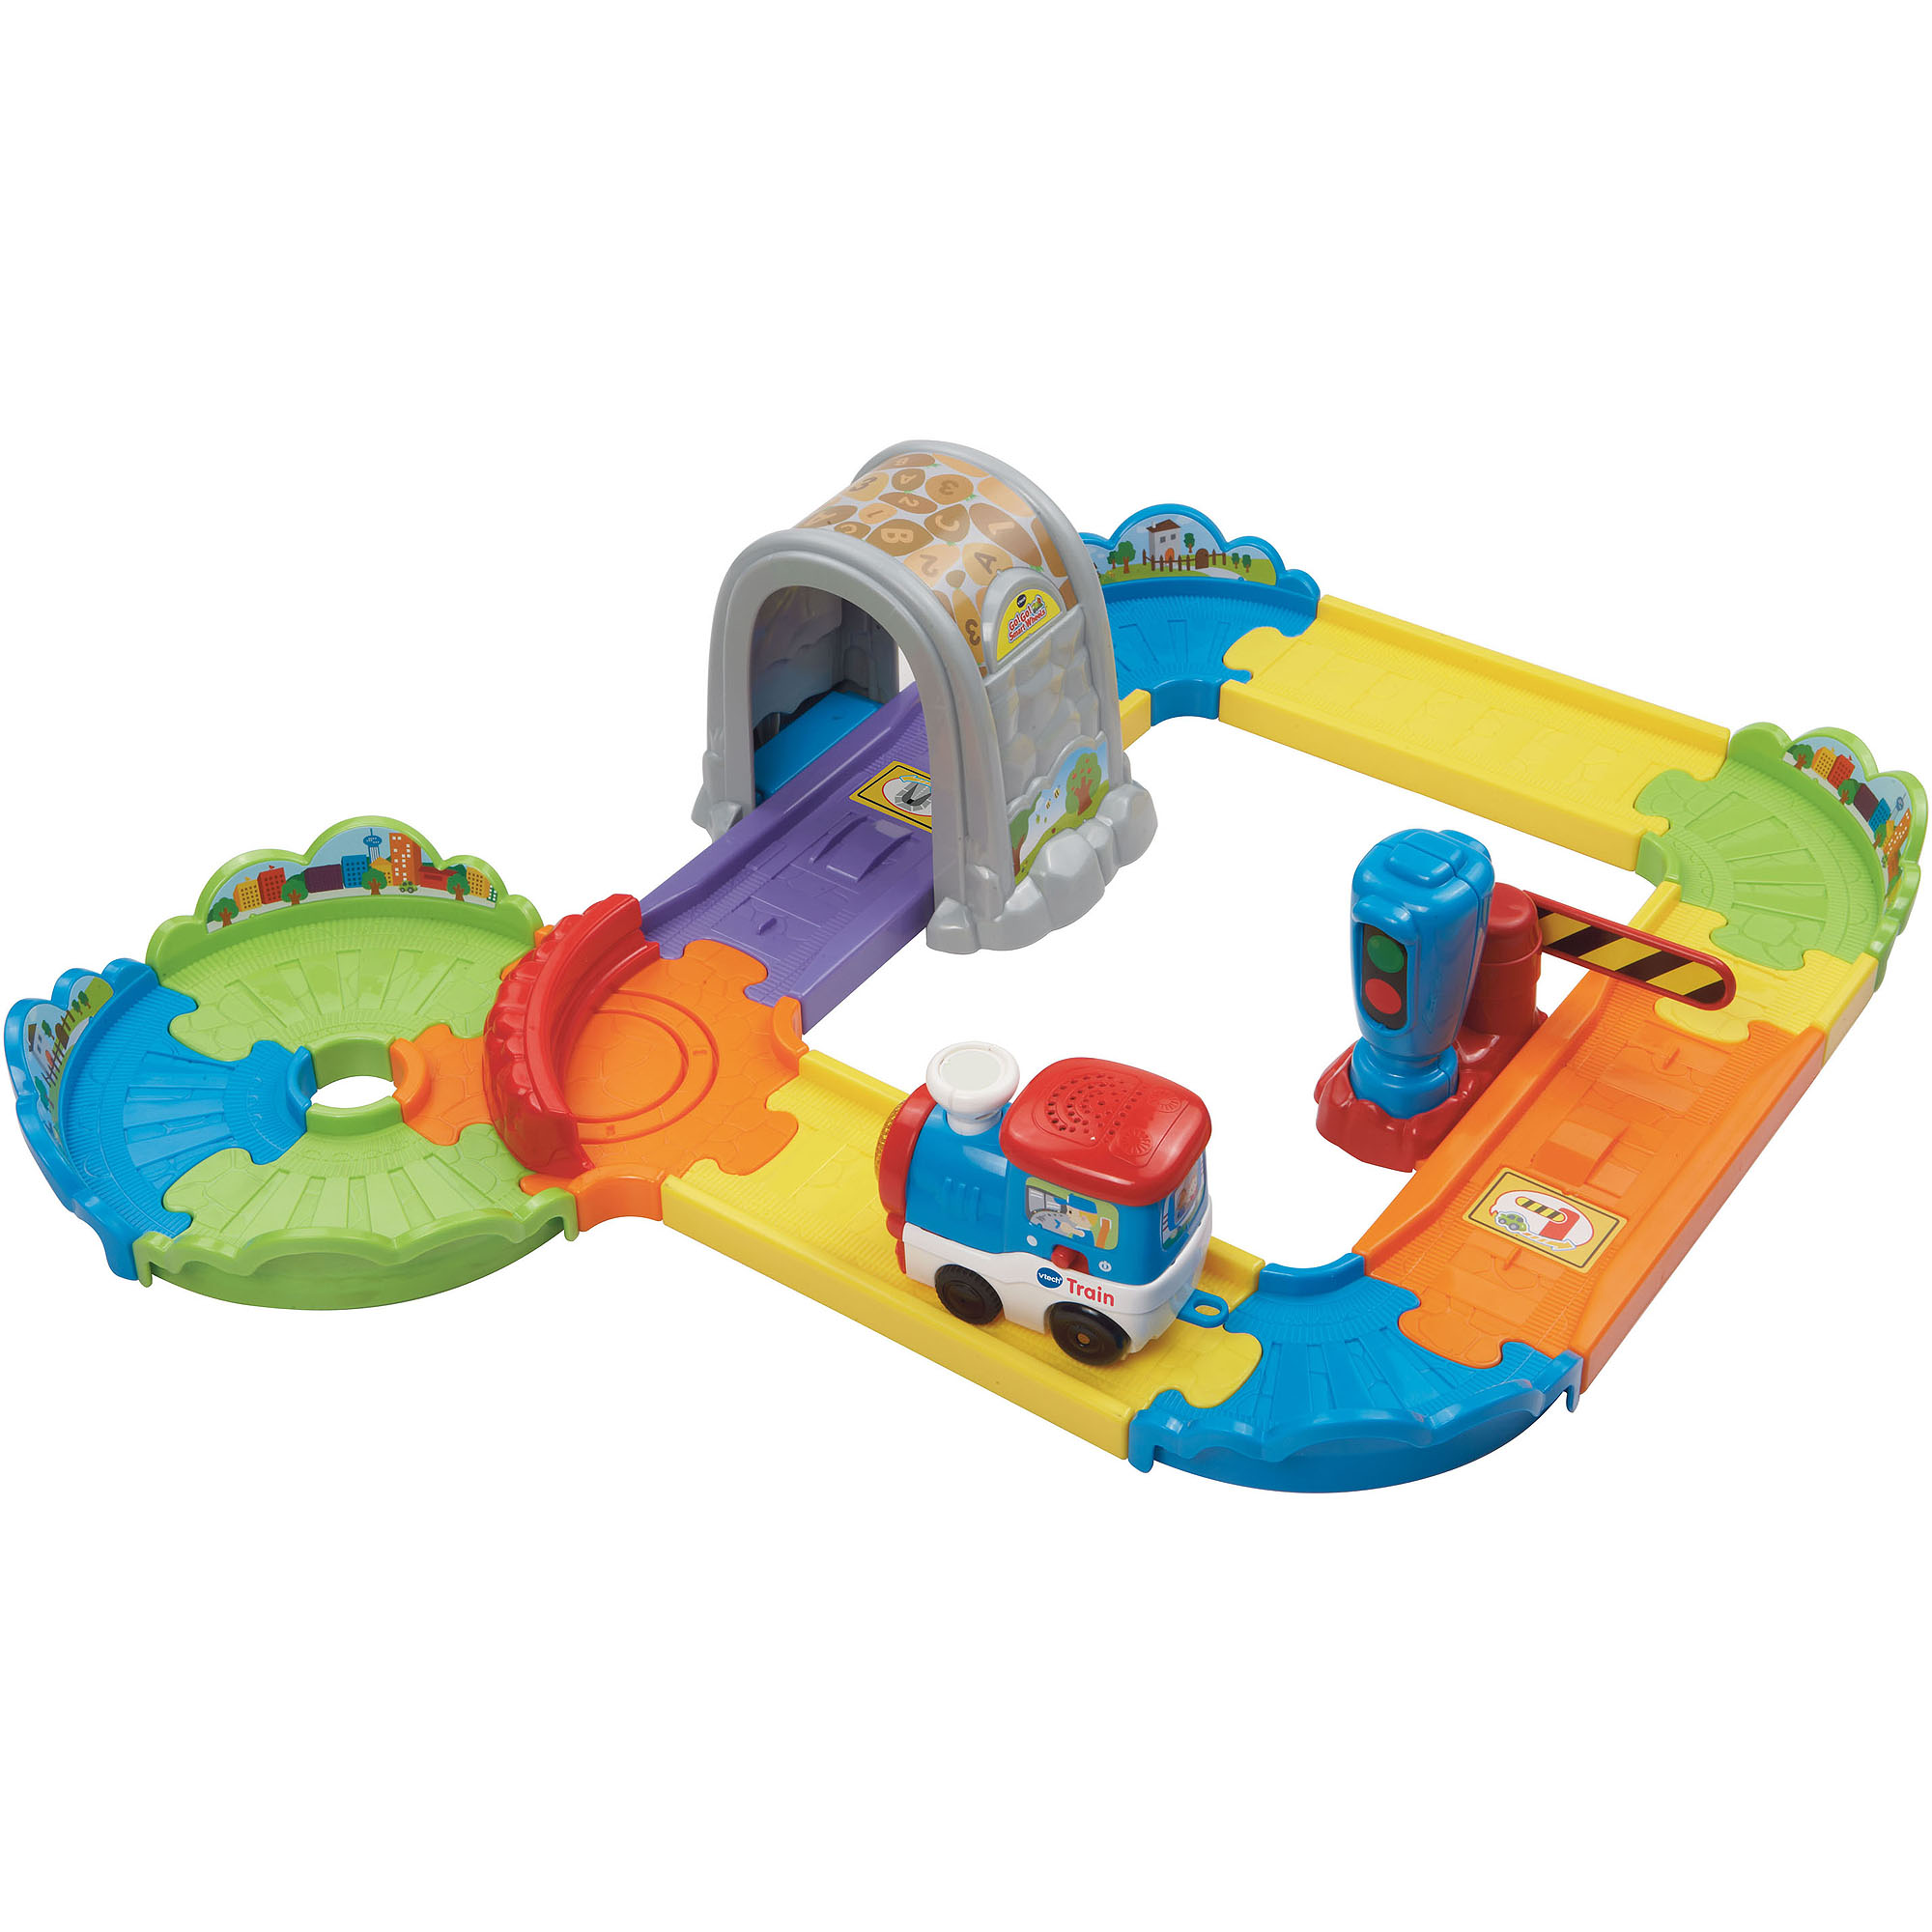 VTech Go! Go! Smart Wheels Choo-Choo Train Play Set